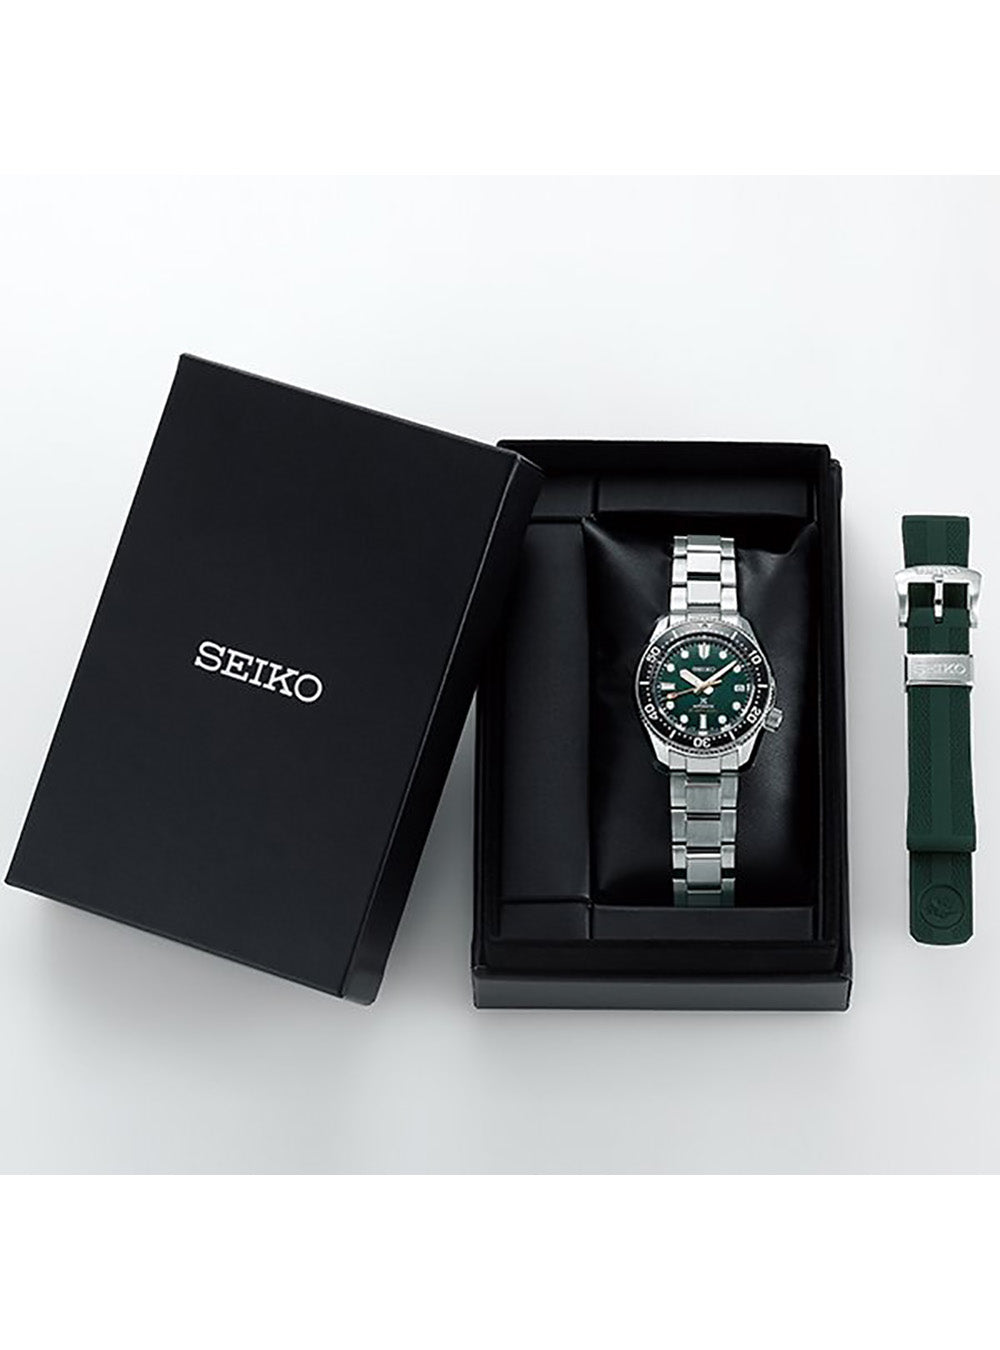 SEIKO PROSPEX DIVER SCUBA 140TH ANNIVERSARY SBDC133 LIMITED EDITION MADE IN JAPAN JDM